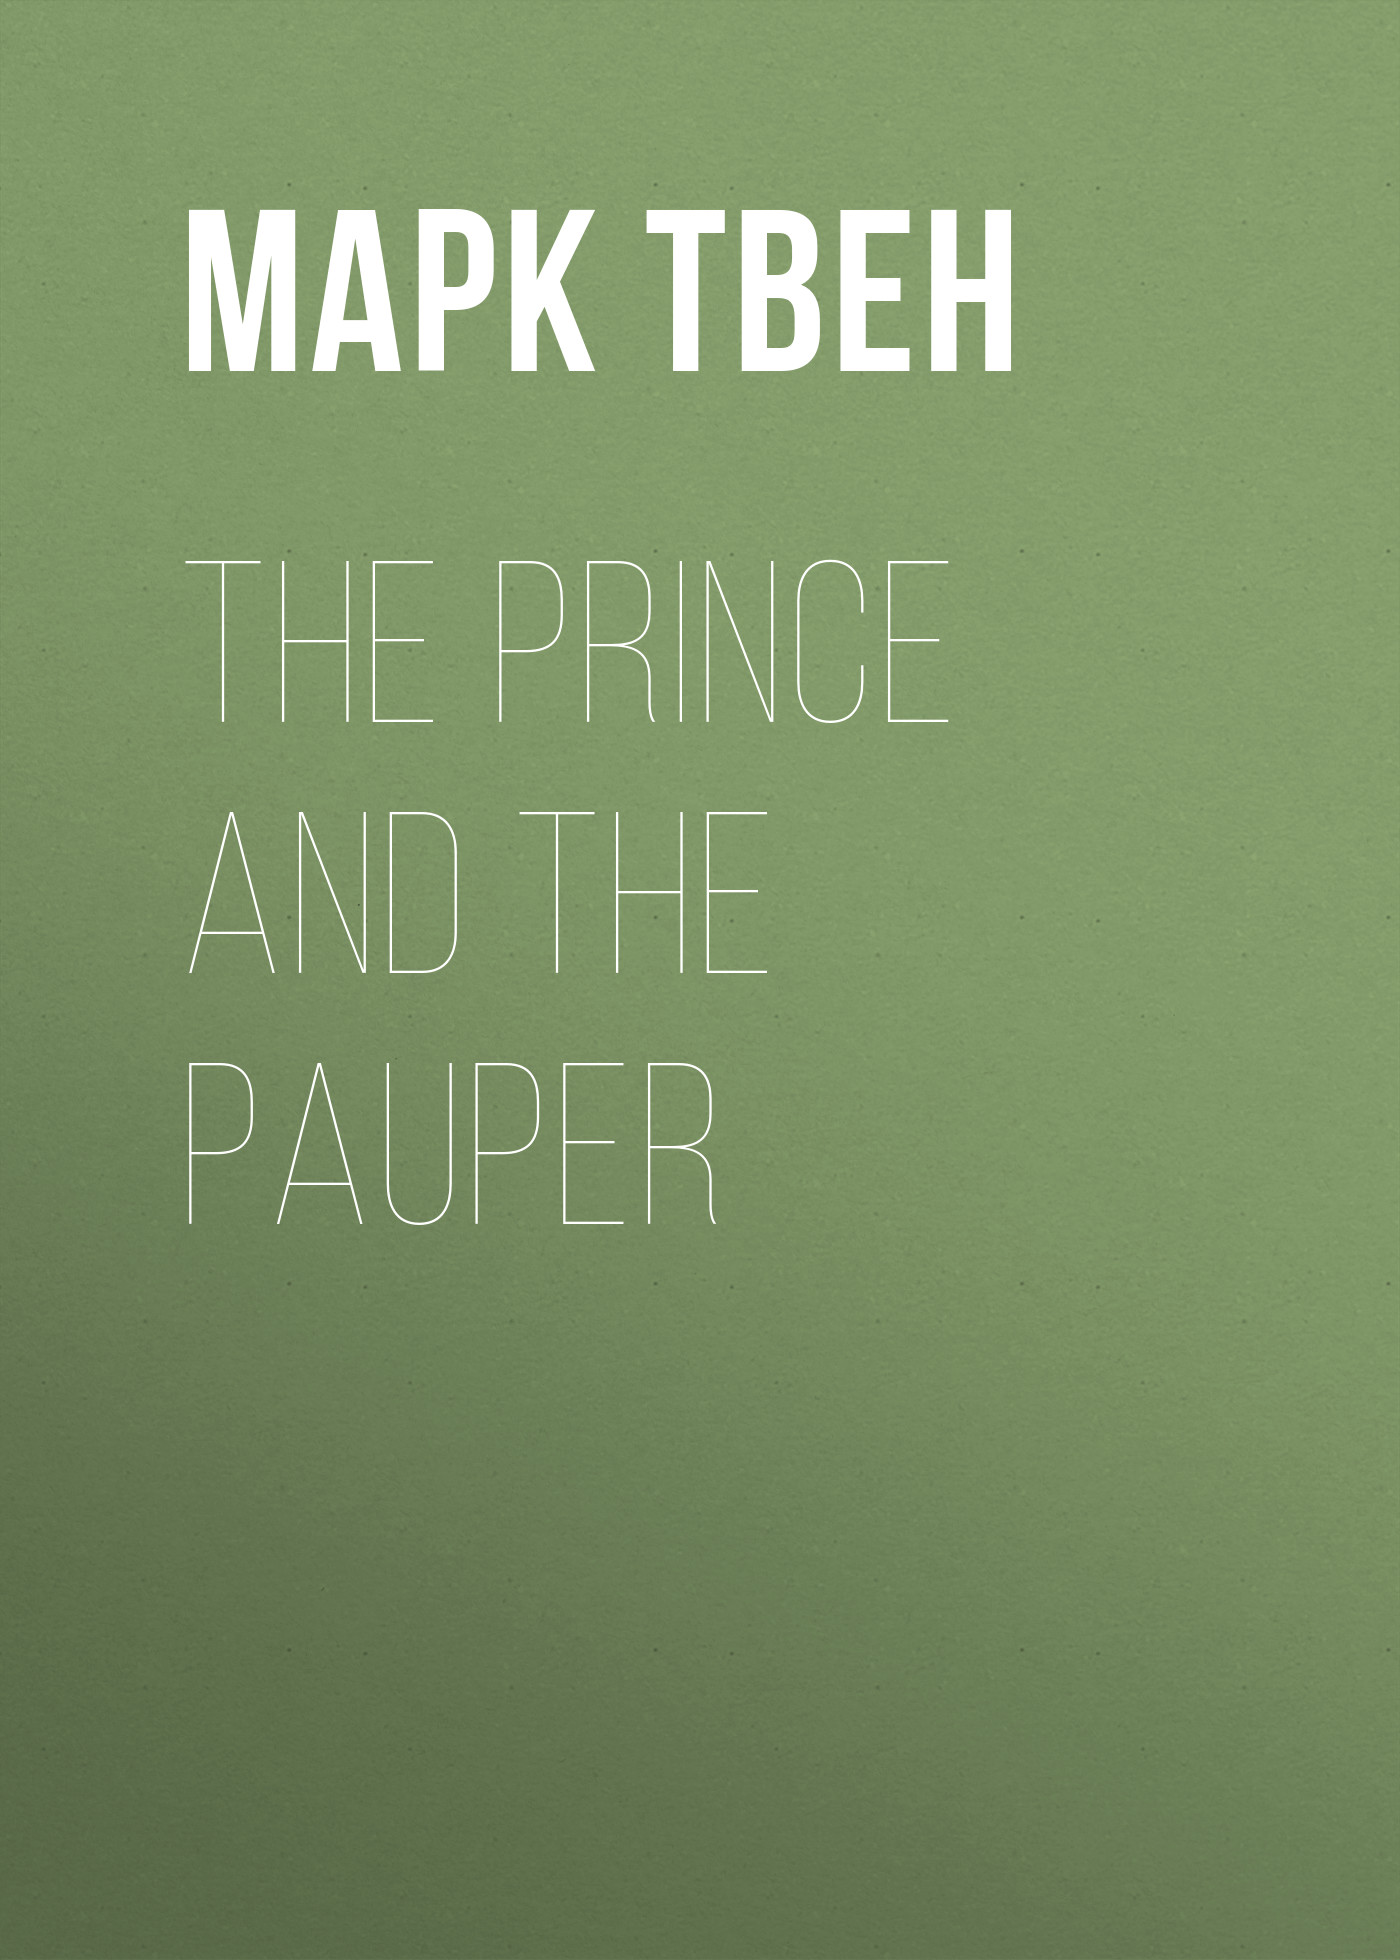 Марк Твен The Prince and the Pauper марк твен 30 000 dollar bequest and other stories